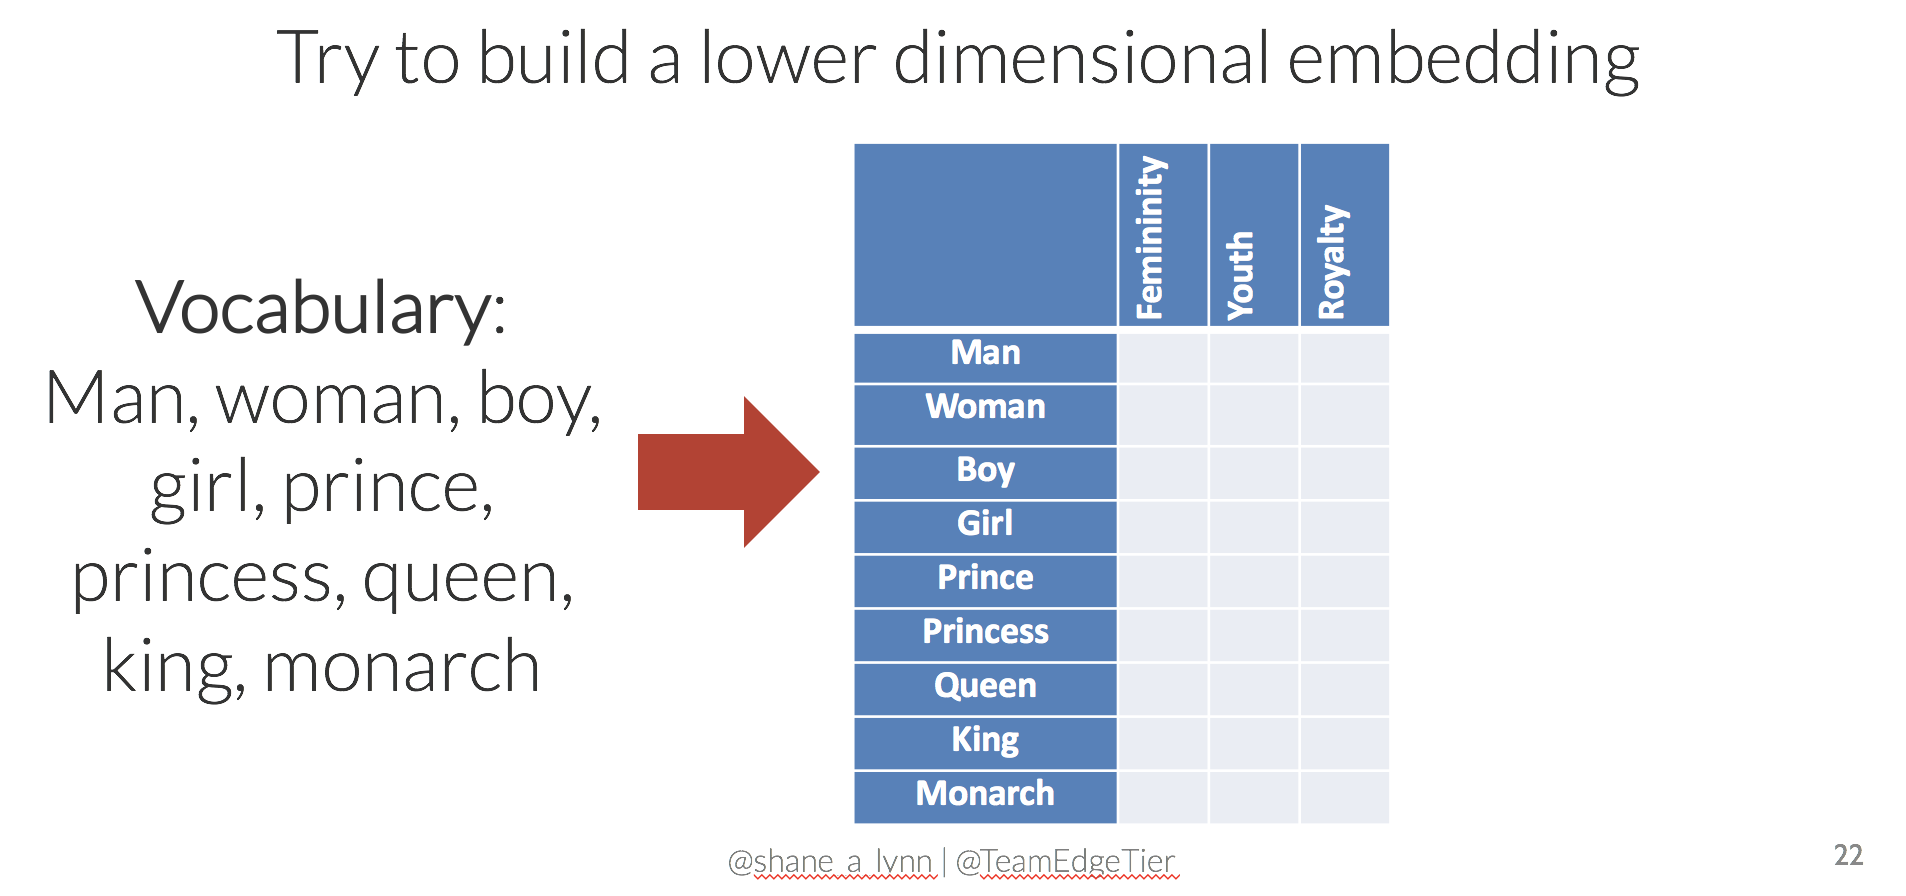 Get Busy with Word Embeddings - An Introduction | Shane Lynn